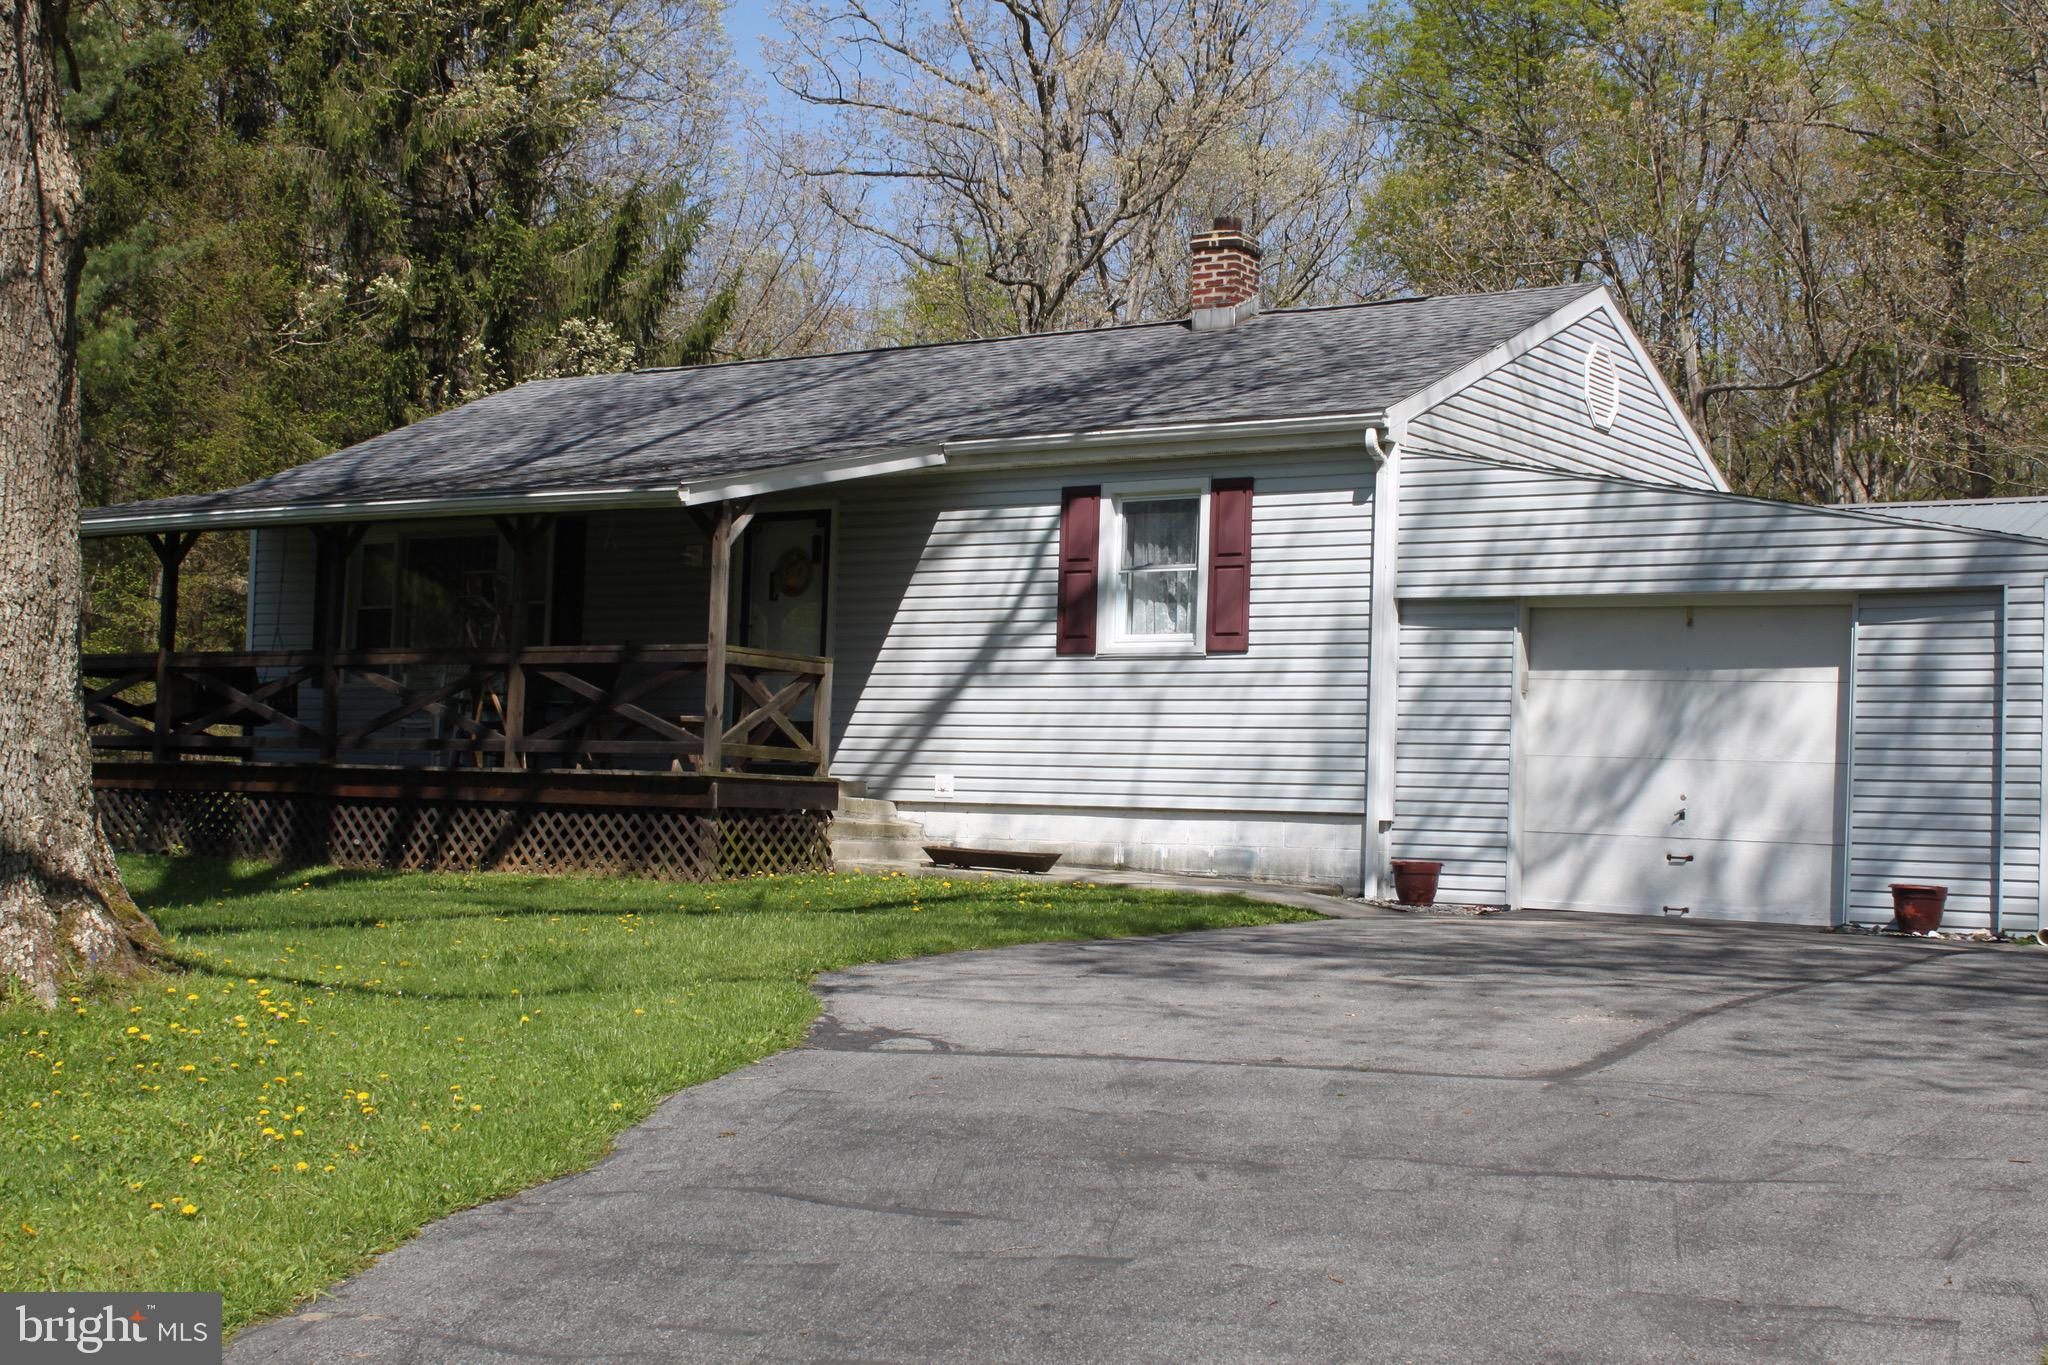 20732 EAGLE FOUNDRY ROAD, BROAD TOP, PA 16621